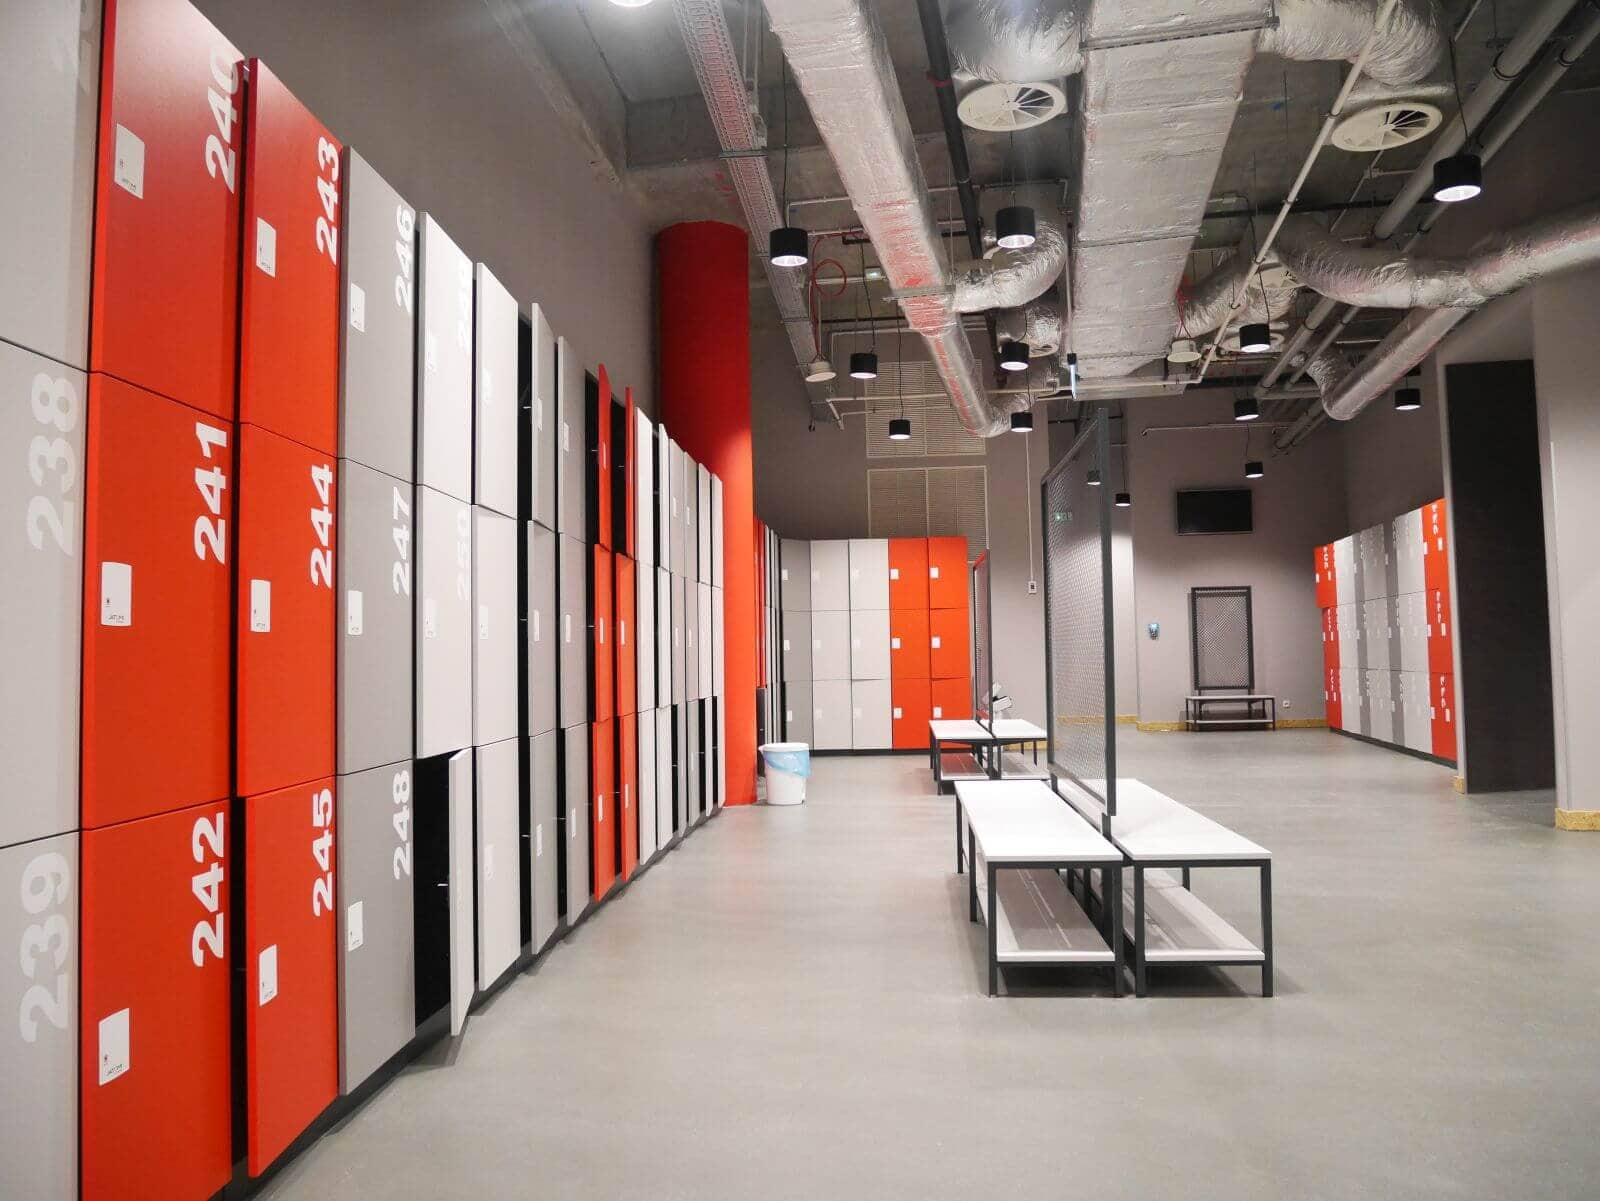 Gym and fitness lockers for changing room personal